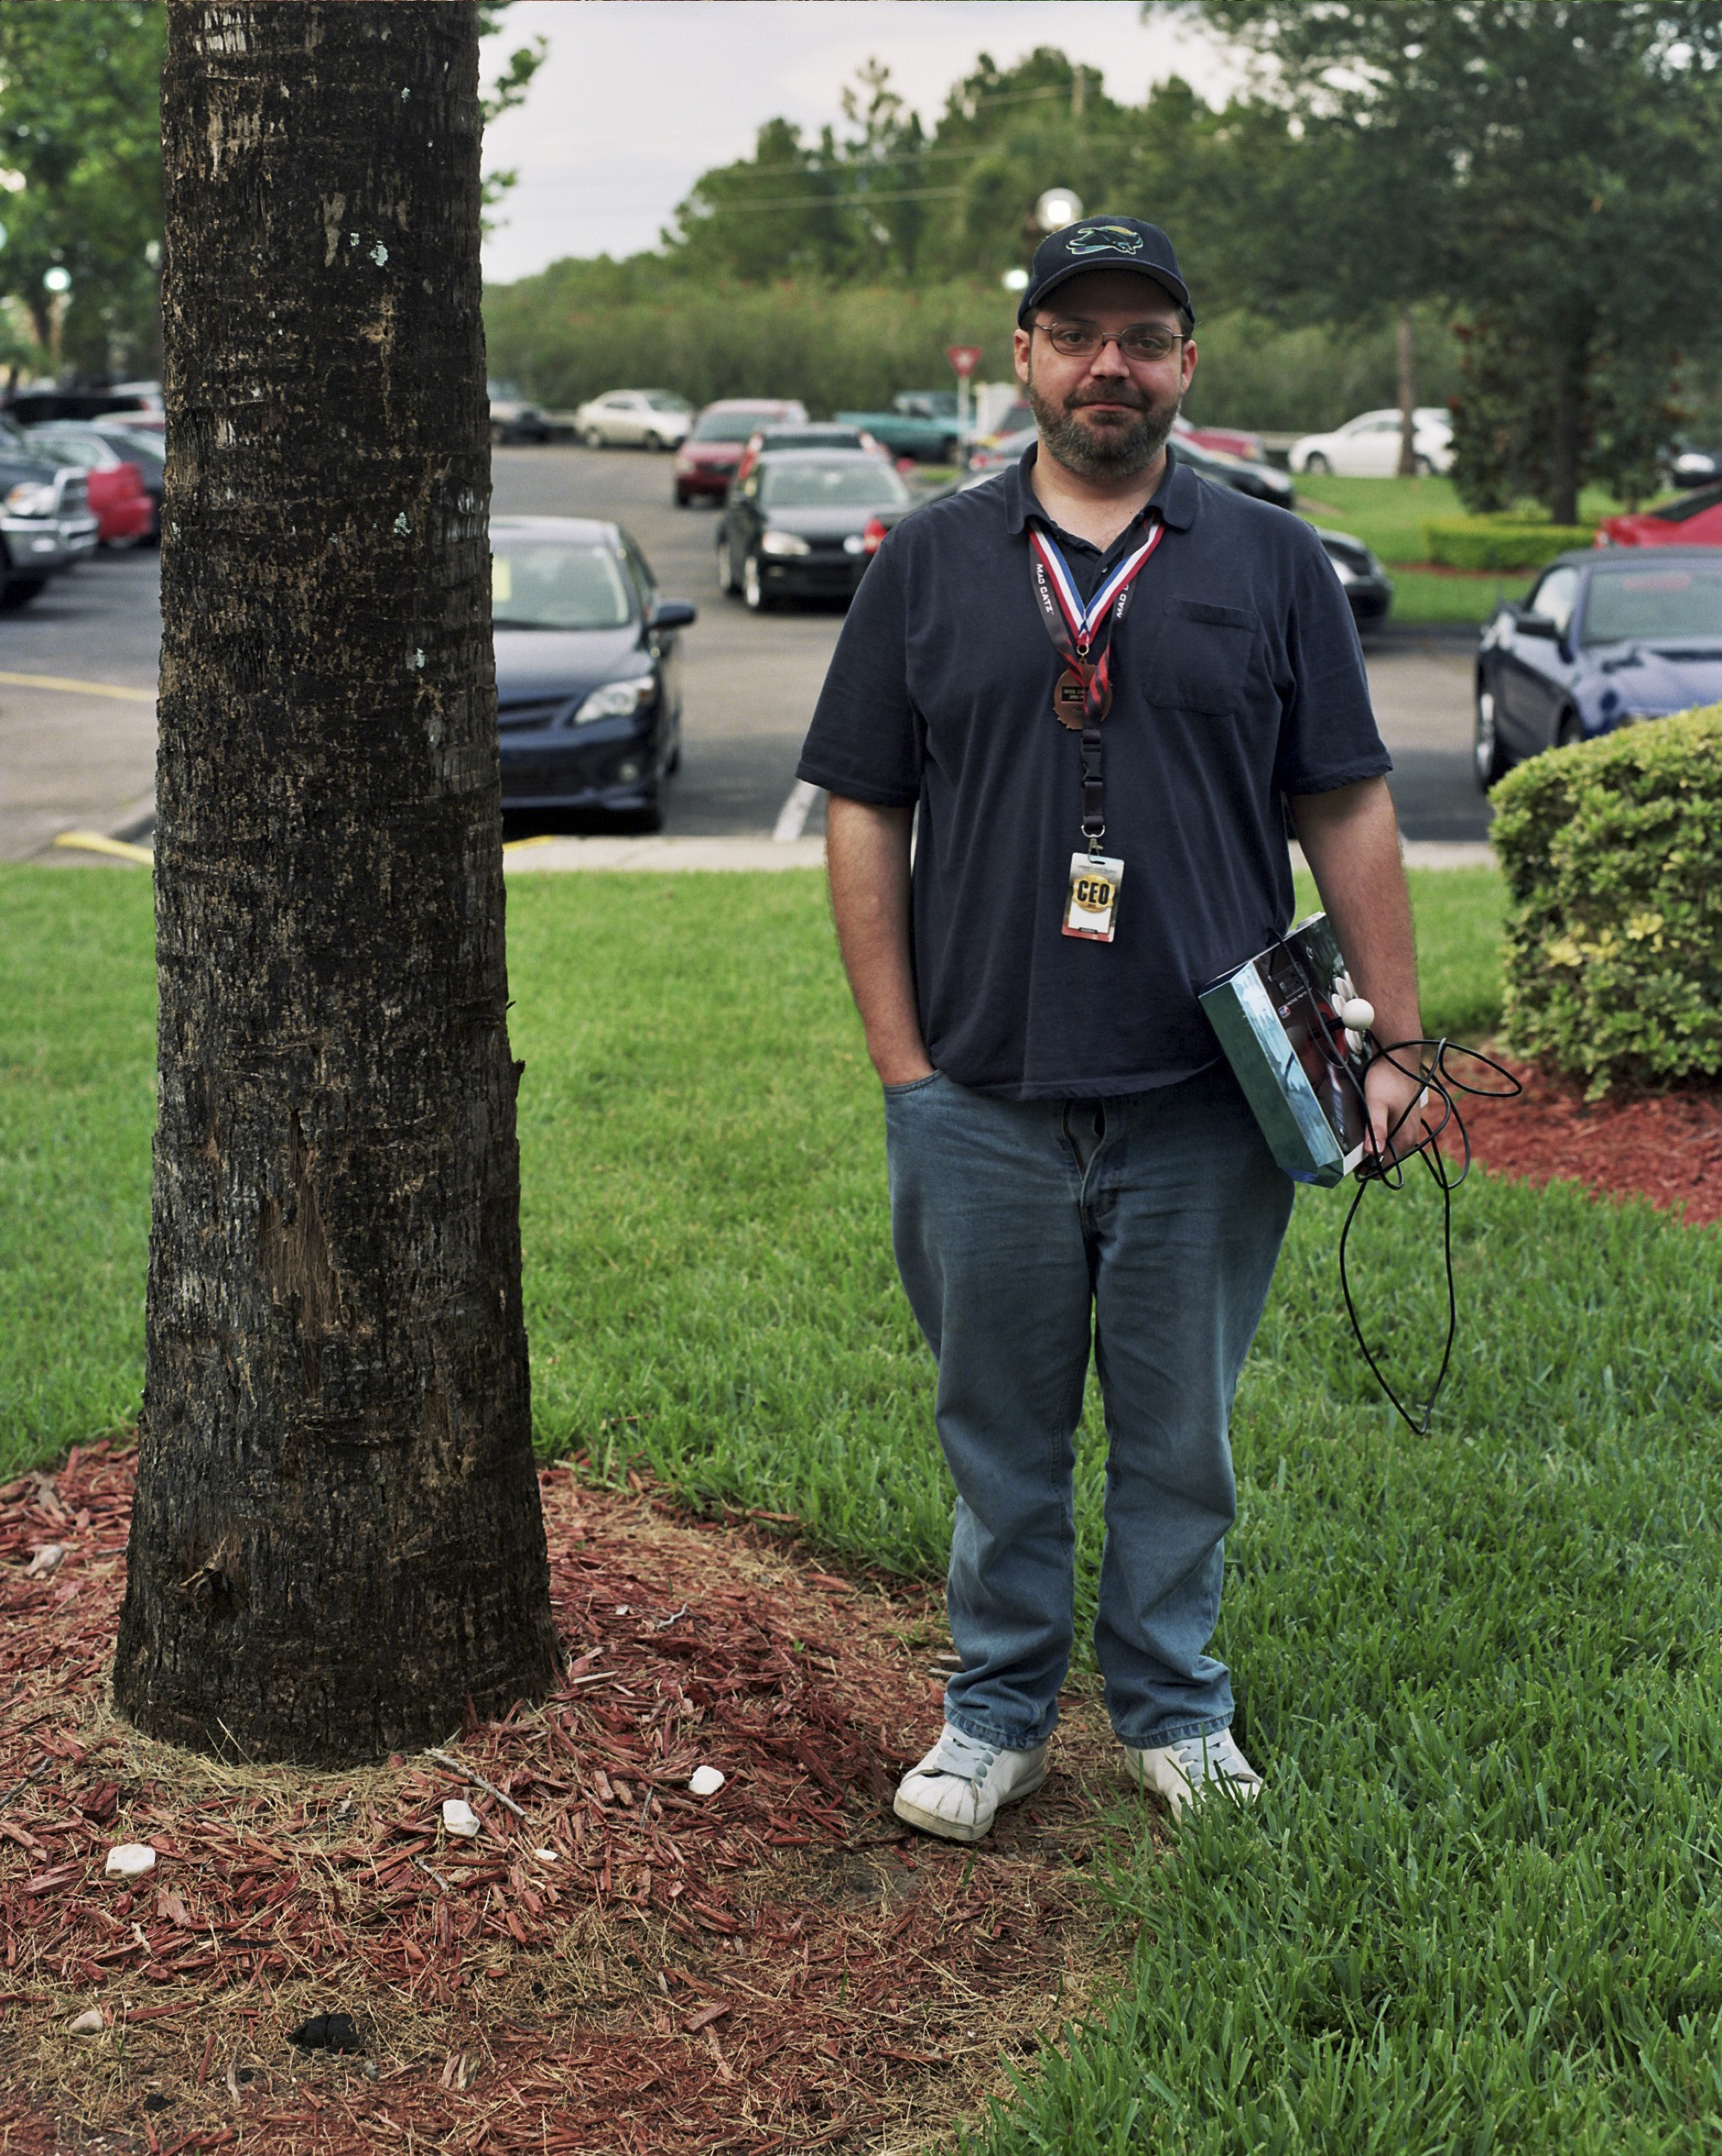 A Soul Calibur player poses for a picture in the early morning by a palm tree in Orlando, Florida.